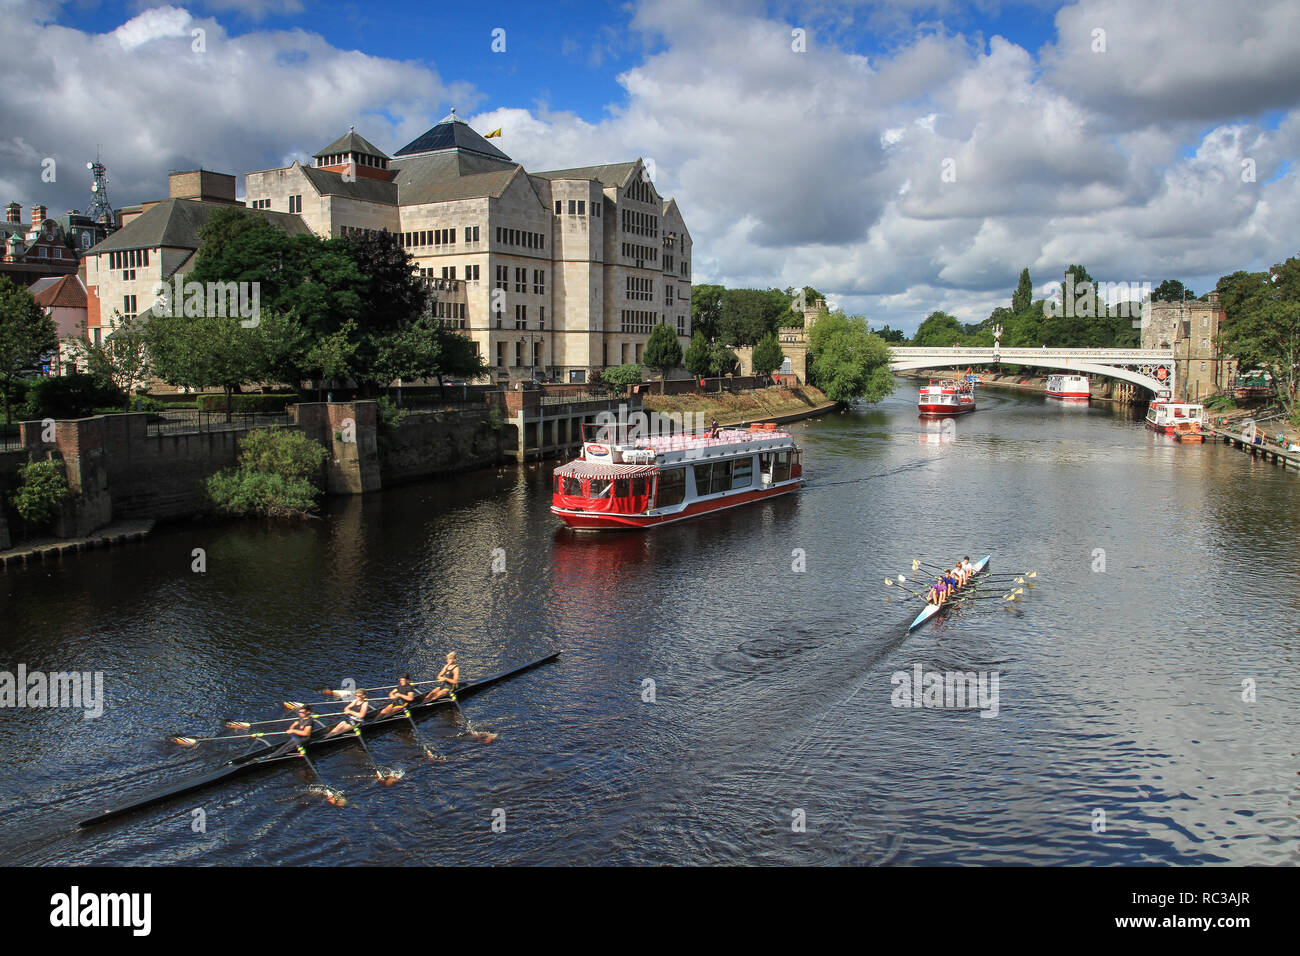 YORK, UK - SEPTEMBER 2, 2015.  A river cruise boat and rowing club boats sailing along the River Ouse in the centre of the historic City of York, UK - Stock Image